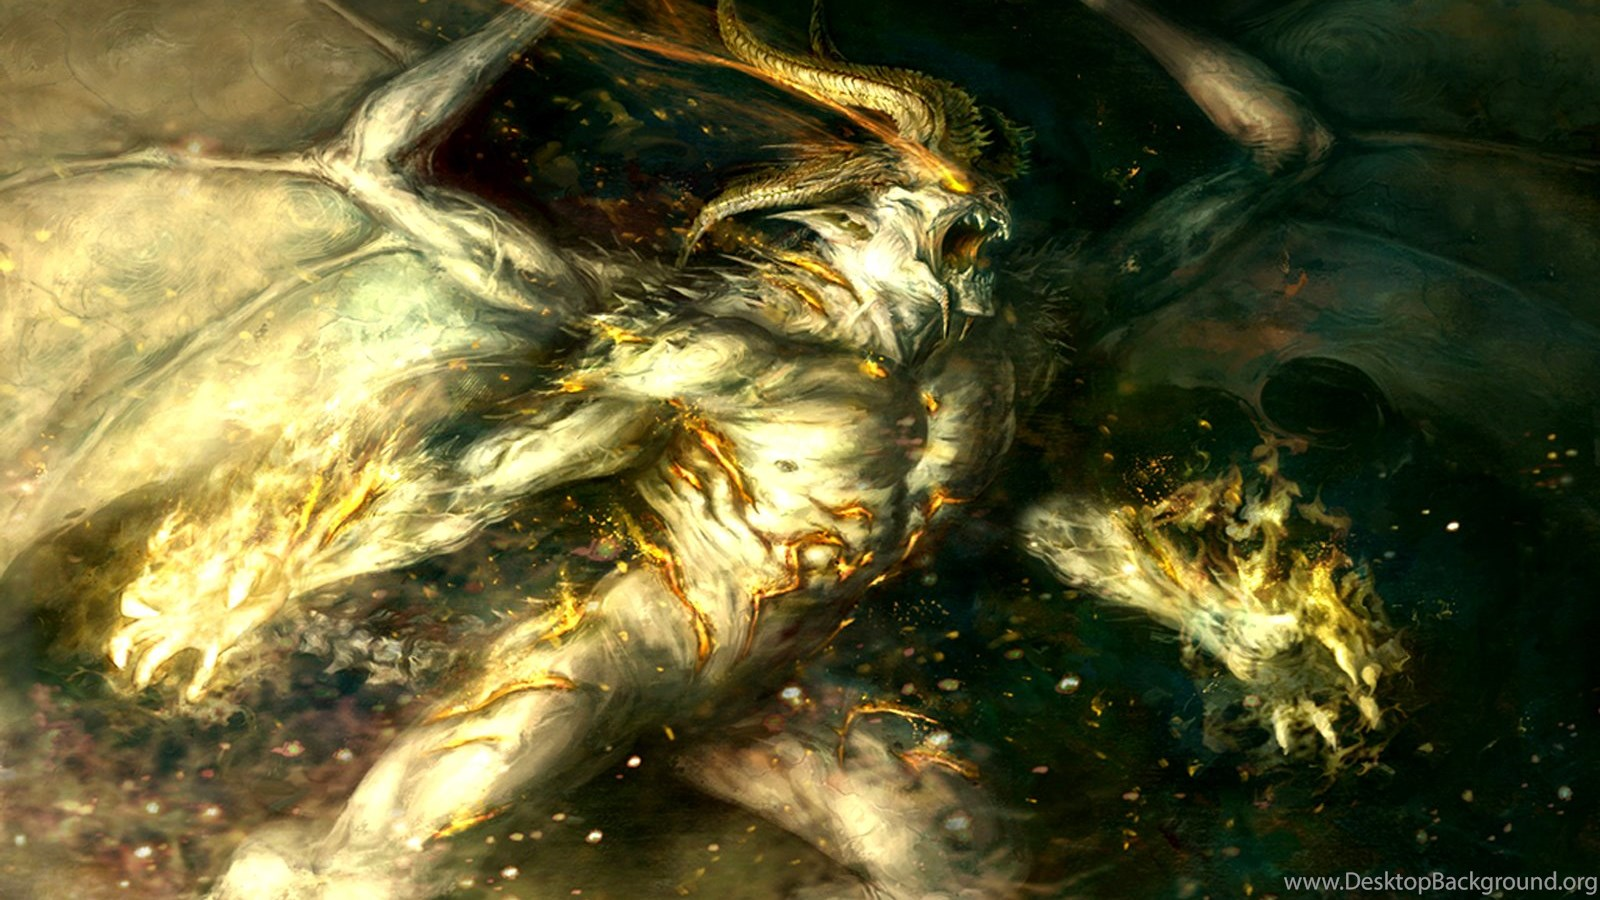 648 Magic The Gathering Hd Wallpapers Desktop Background